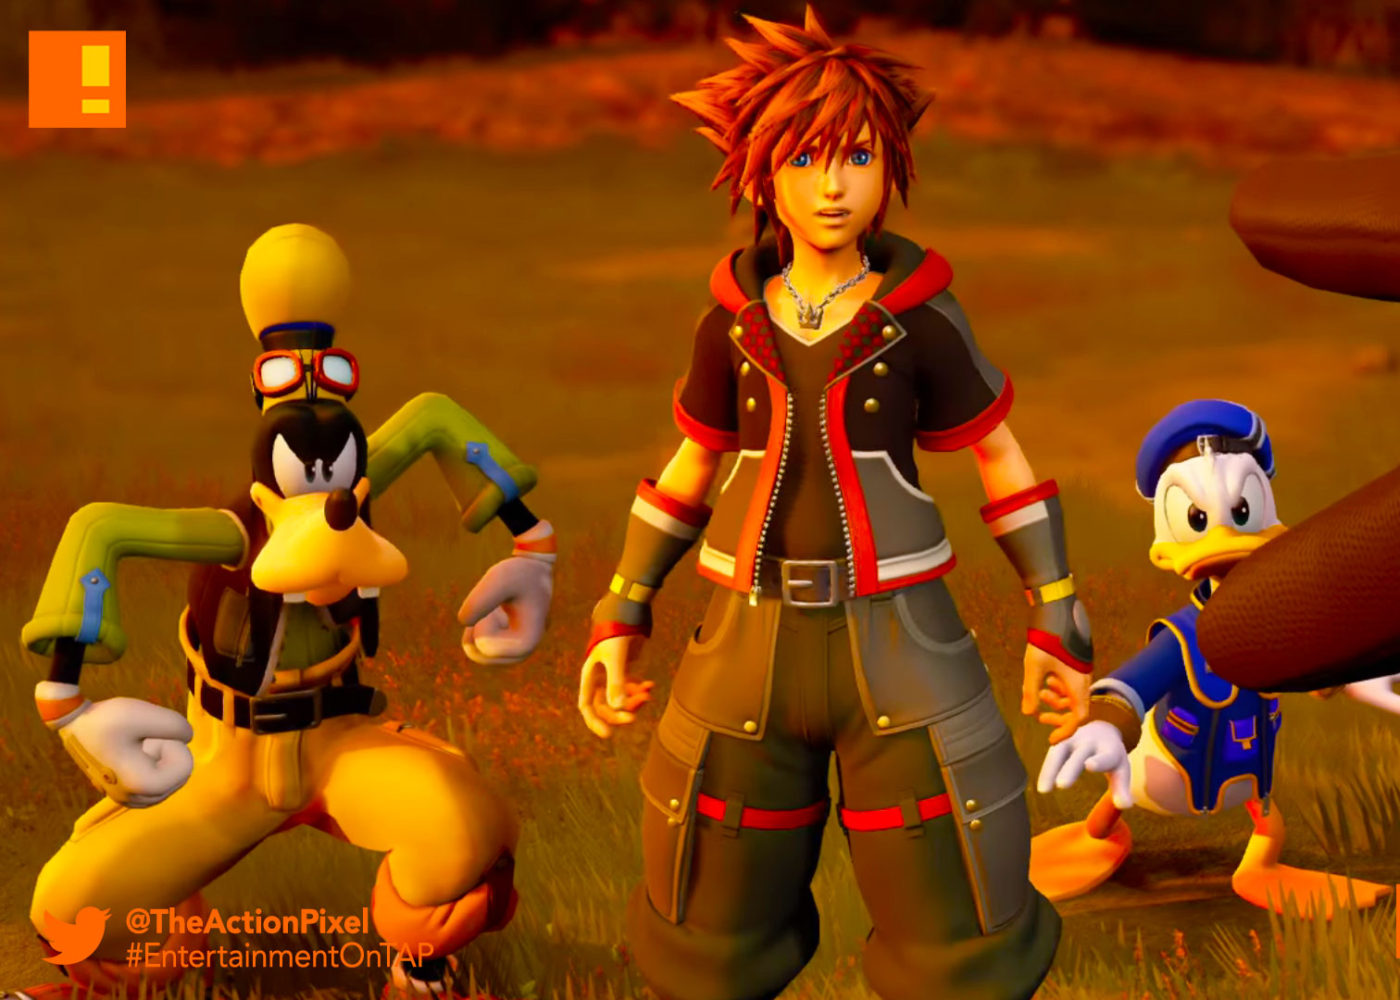 kingdom hearts 3, kingdom hearts , kingdom hearts iii, orchestra, trailer , Sora, Donald, donald duck, goofy, disney, d23, the action pixel, entertainment on tap